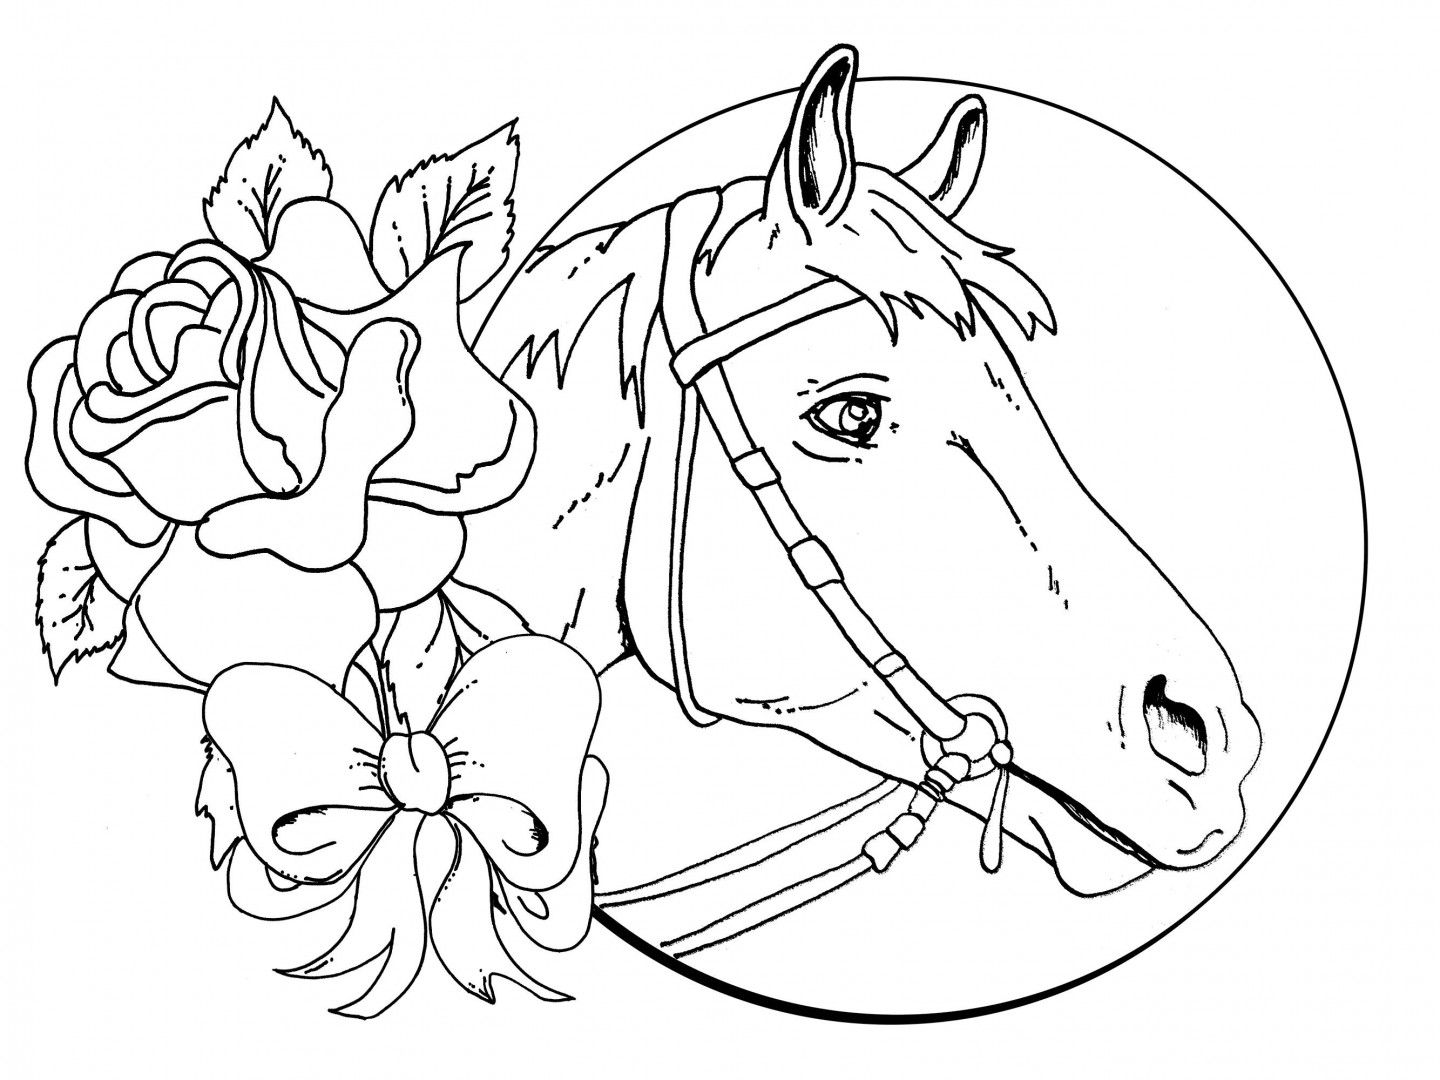 Coloring Pages For Girls 8 And Up. animal coloring pages for girls ...